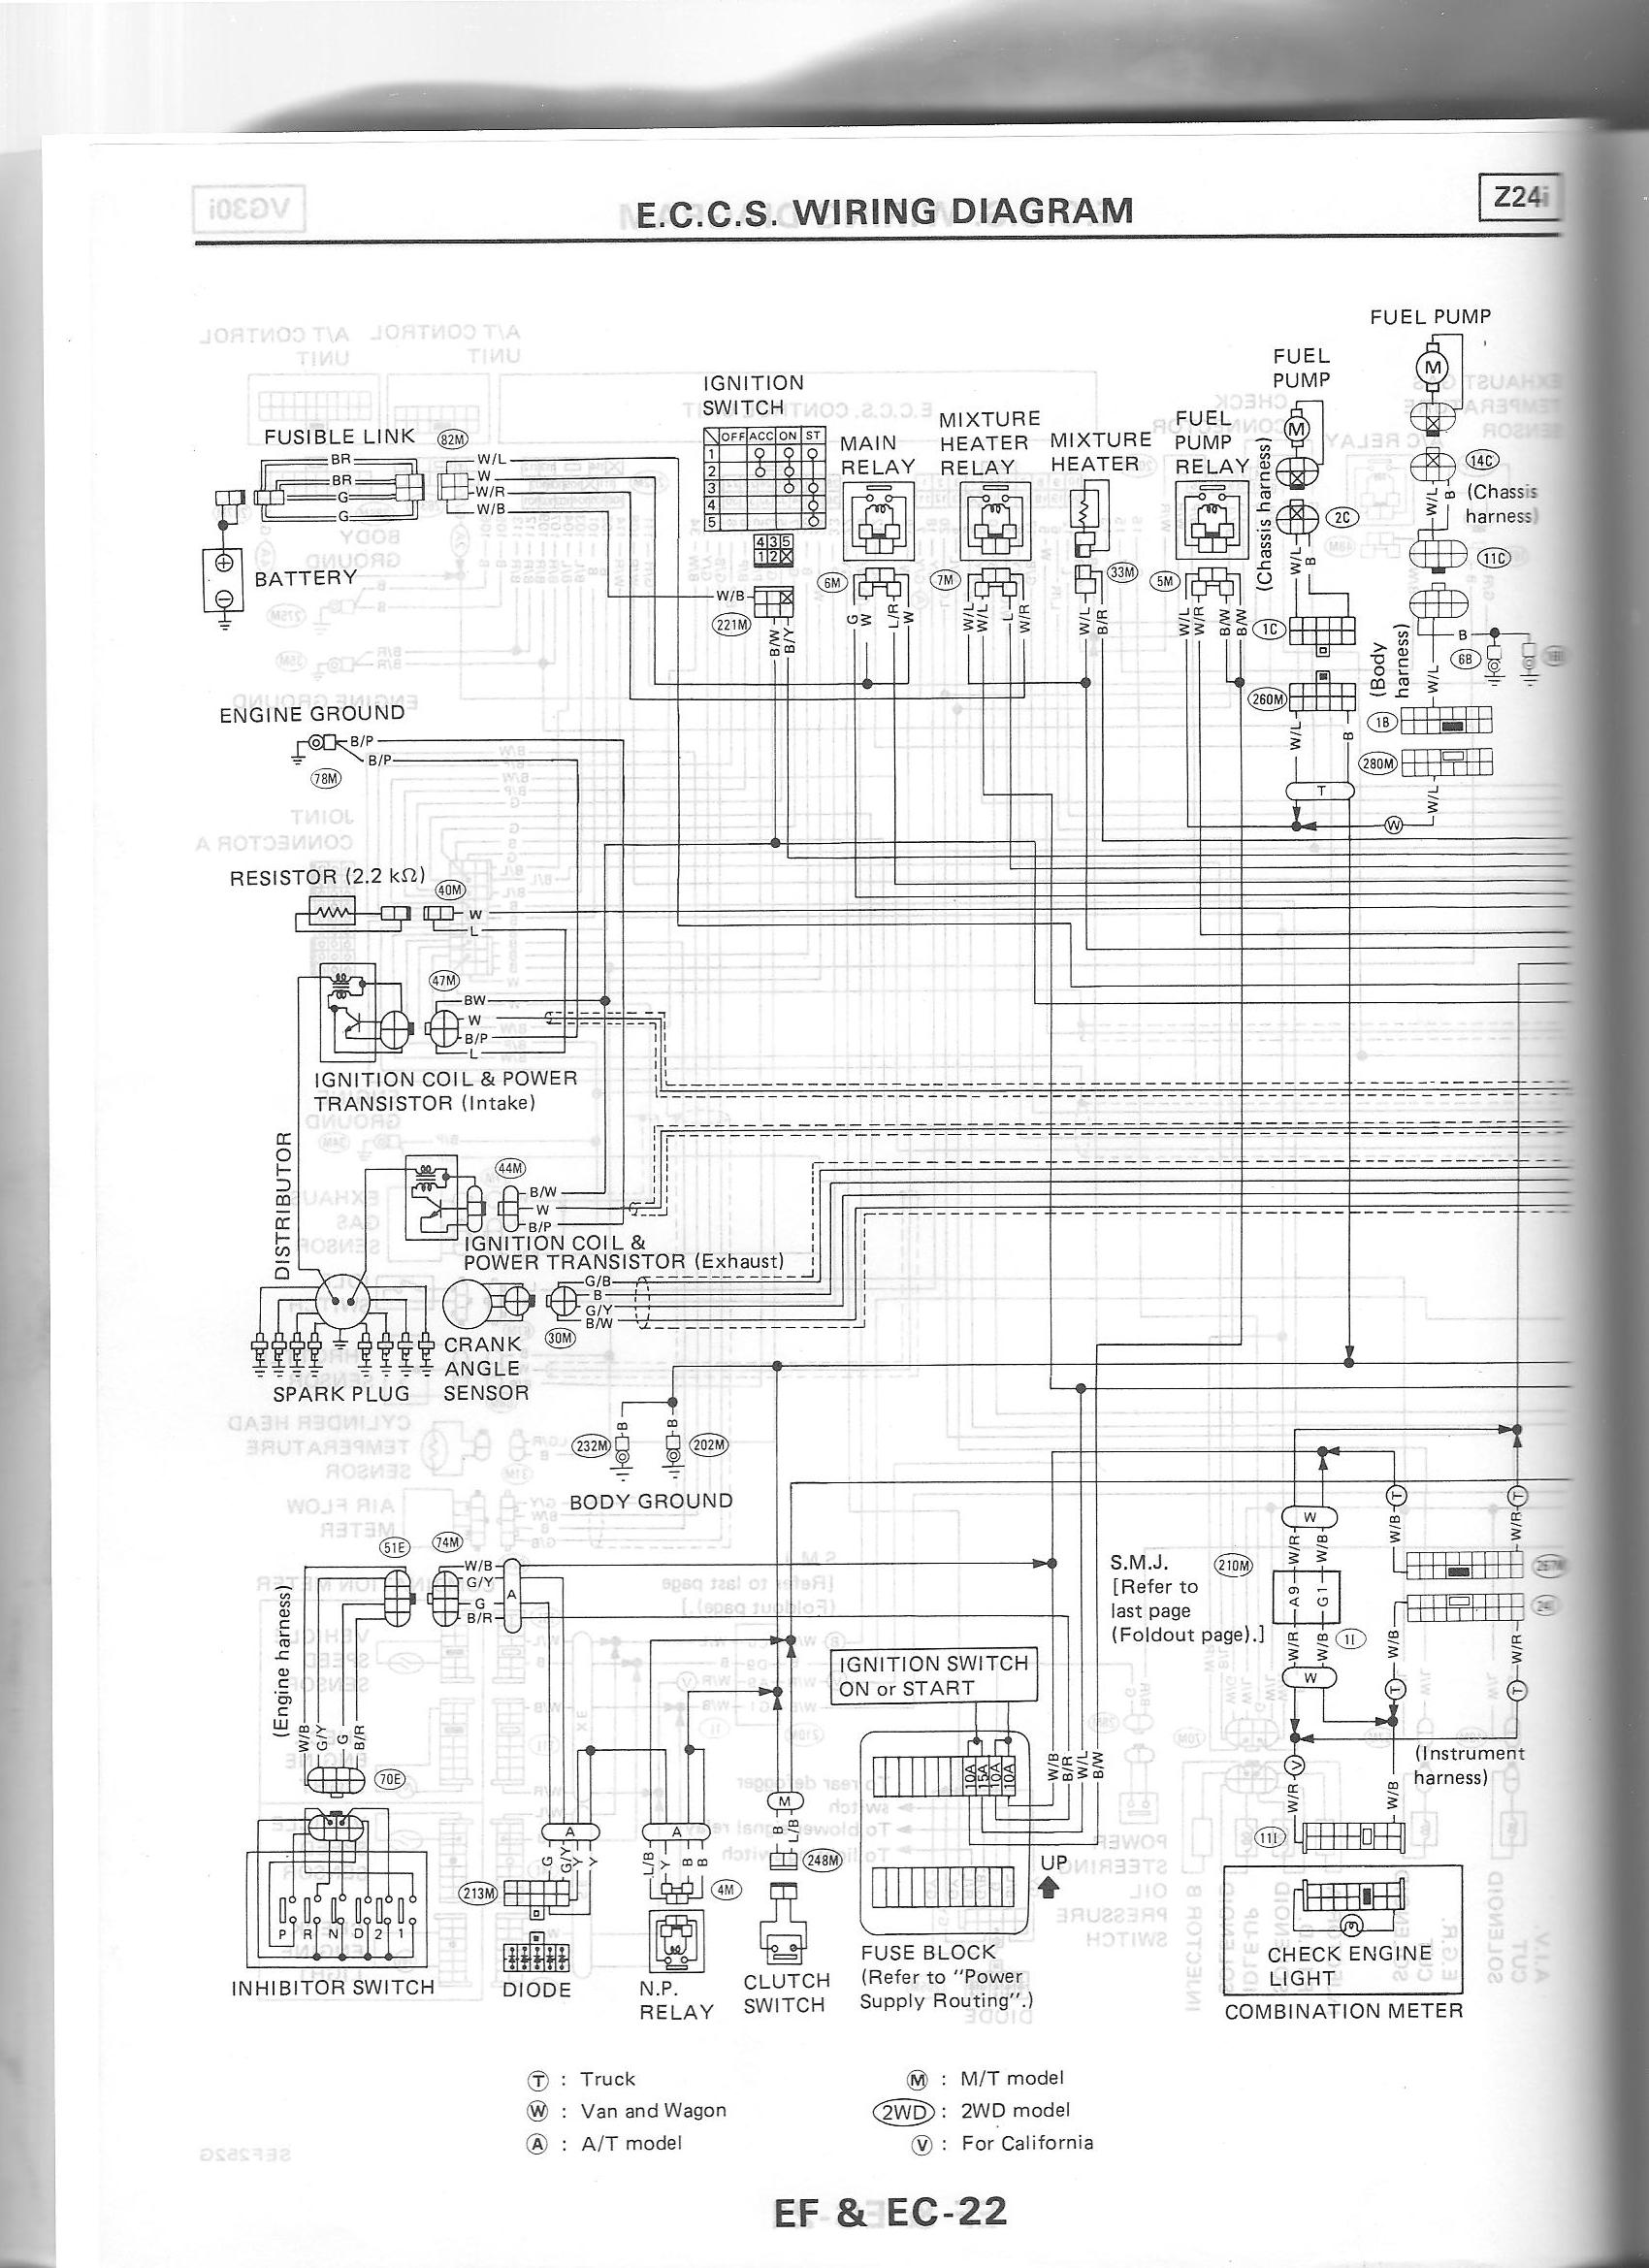 wiring1_88 nissan nut 1986 nissan pickup truck wiring diagram at aneh.co